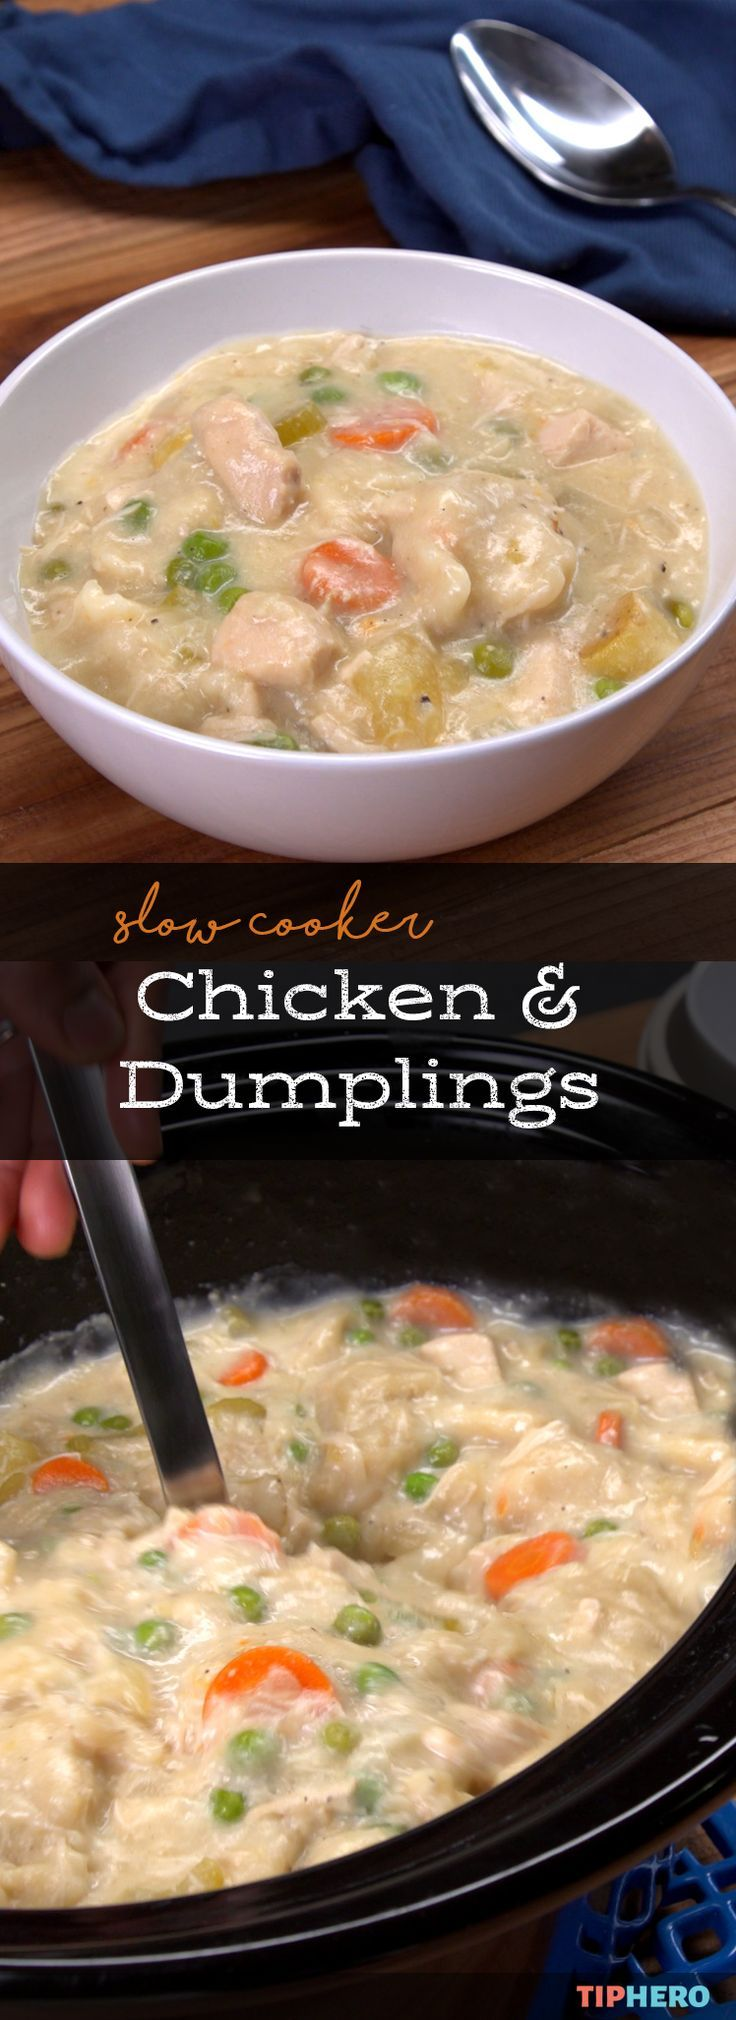 Nothing says comfort food like chicken and dumplings and our slow cooker chicken and dumplings recipe makes it easy to enjoy this family favorite any night of the week. This fool proof recipe features what makes chicken and dumplings so good -- juicy chicken, hearty veggies, rich gravy, and doughy dumplings to soak it all up. Click for the recipe and see how it's made.  #familydinner #easymeals